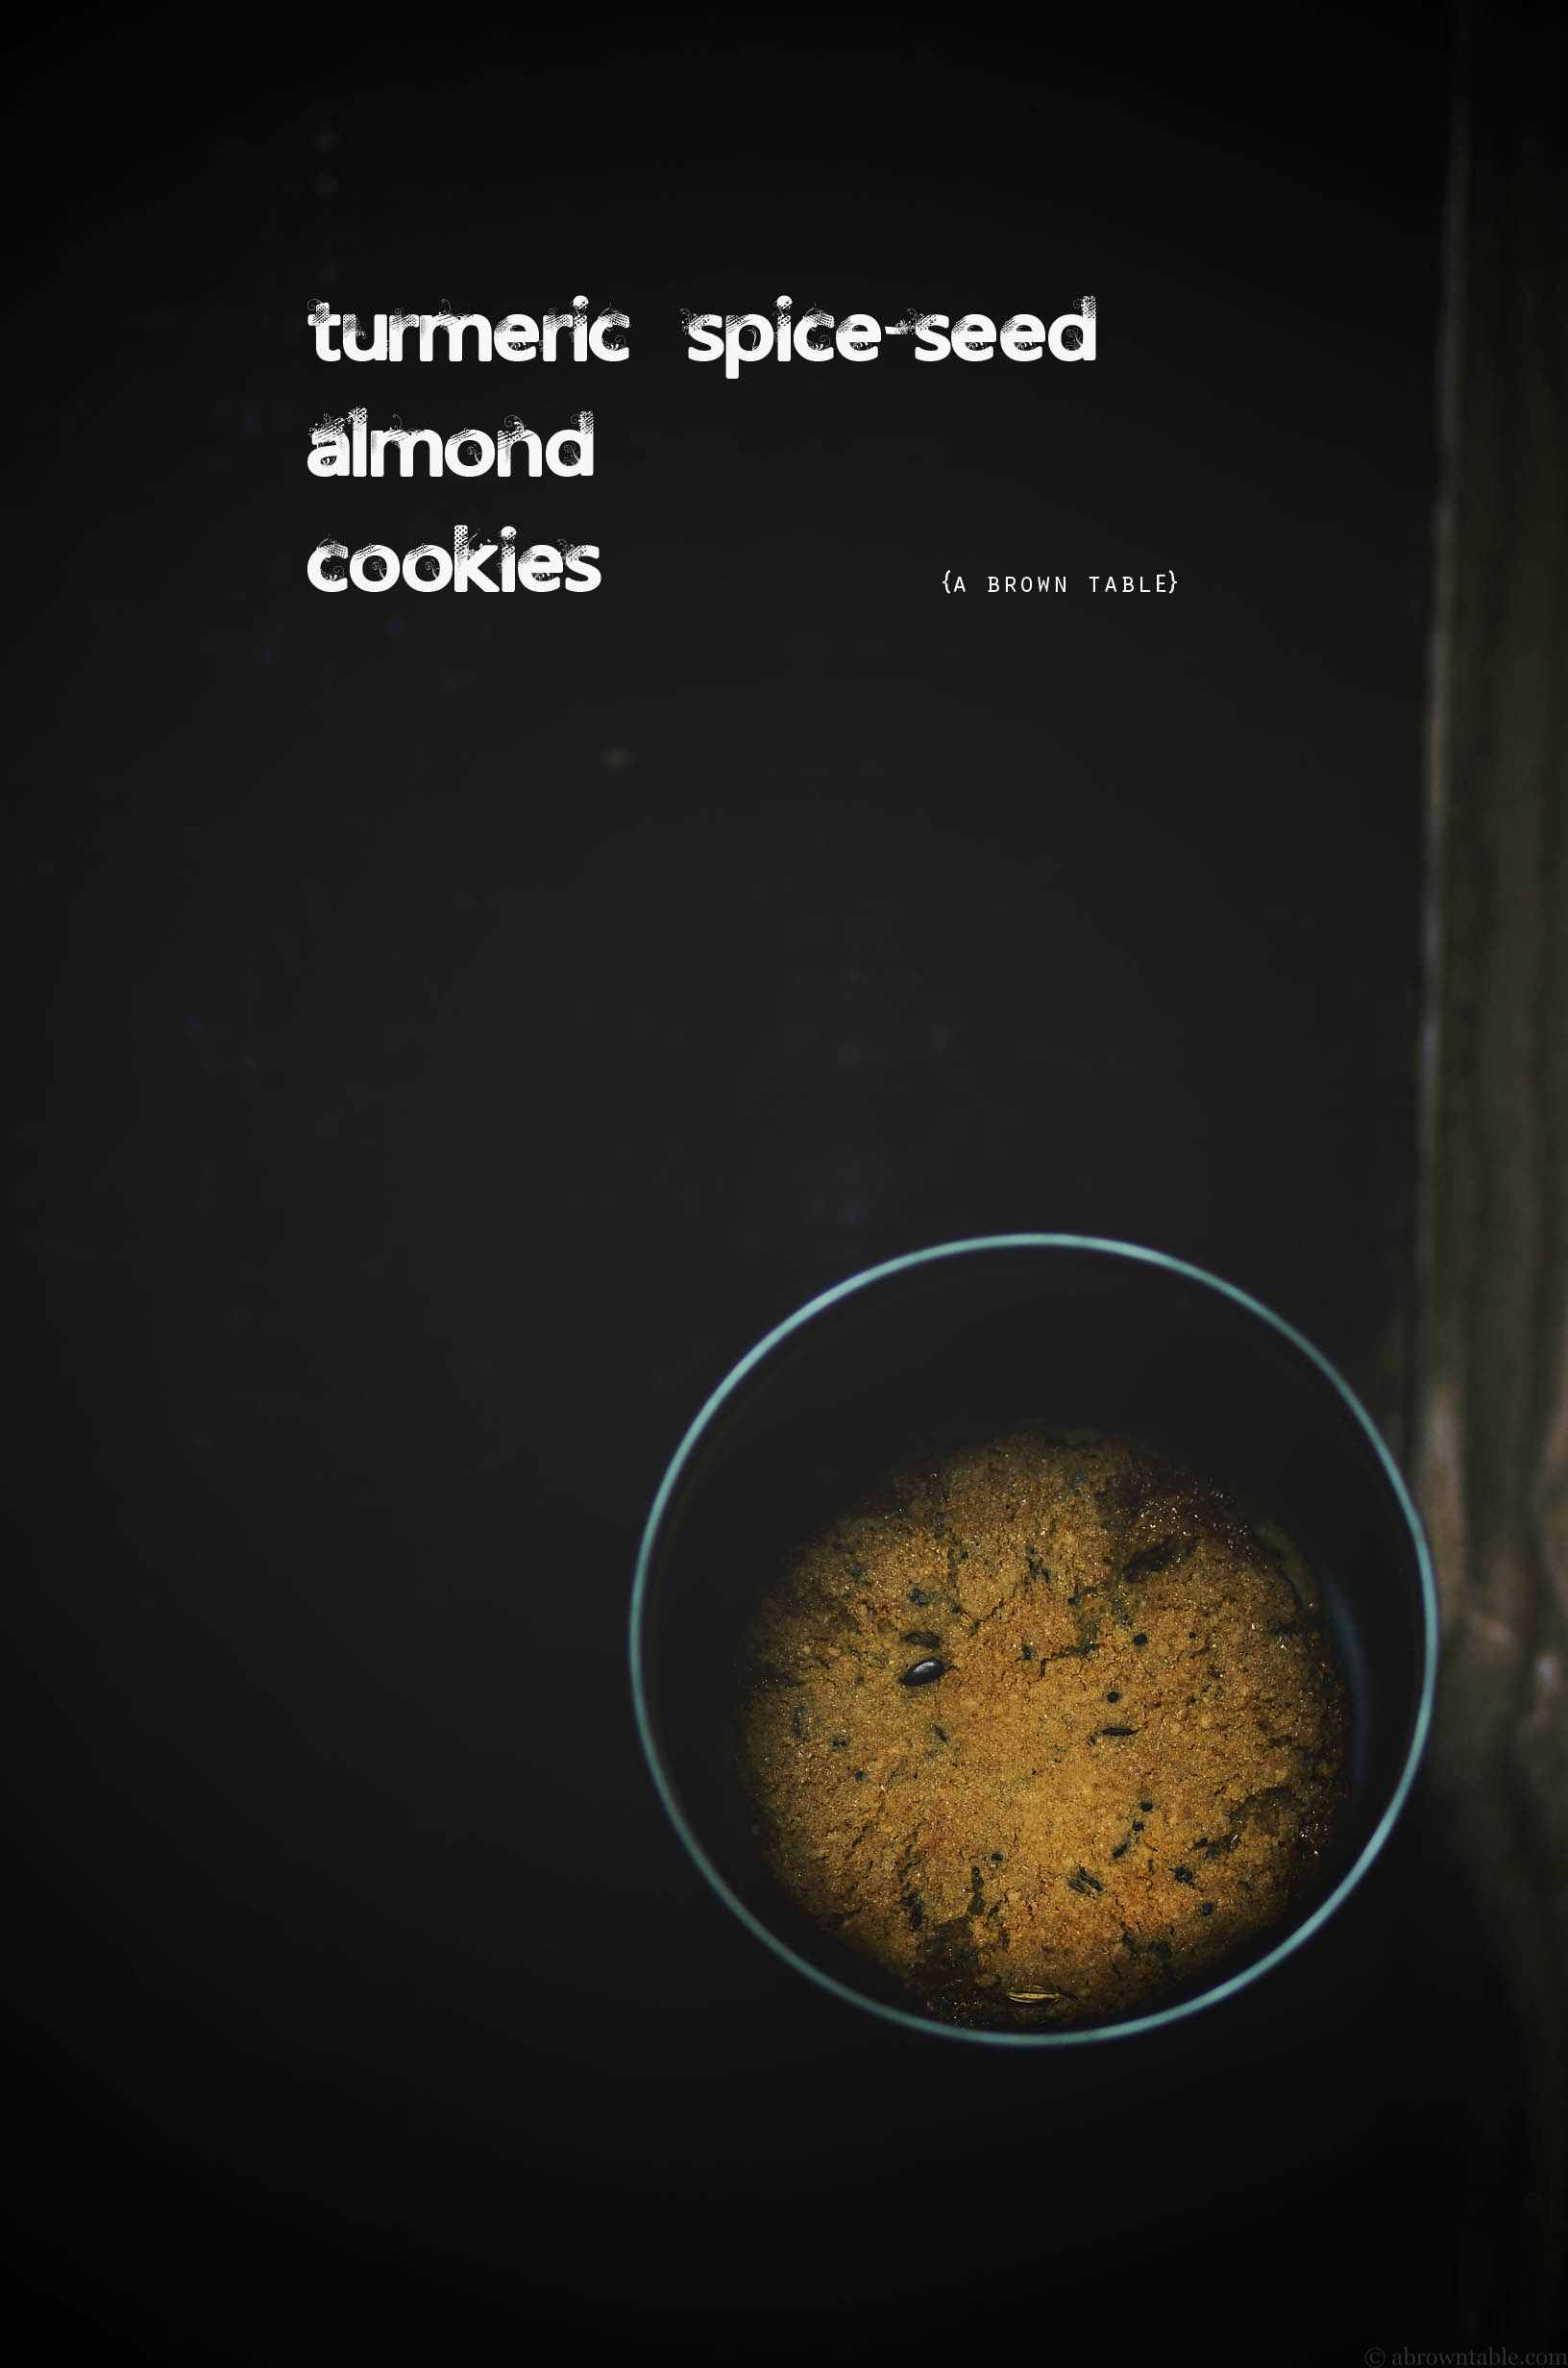 turmeric spice seed almond cookies in can